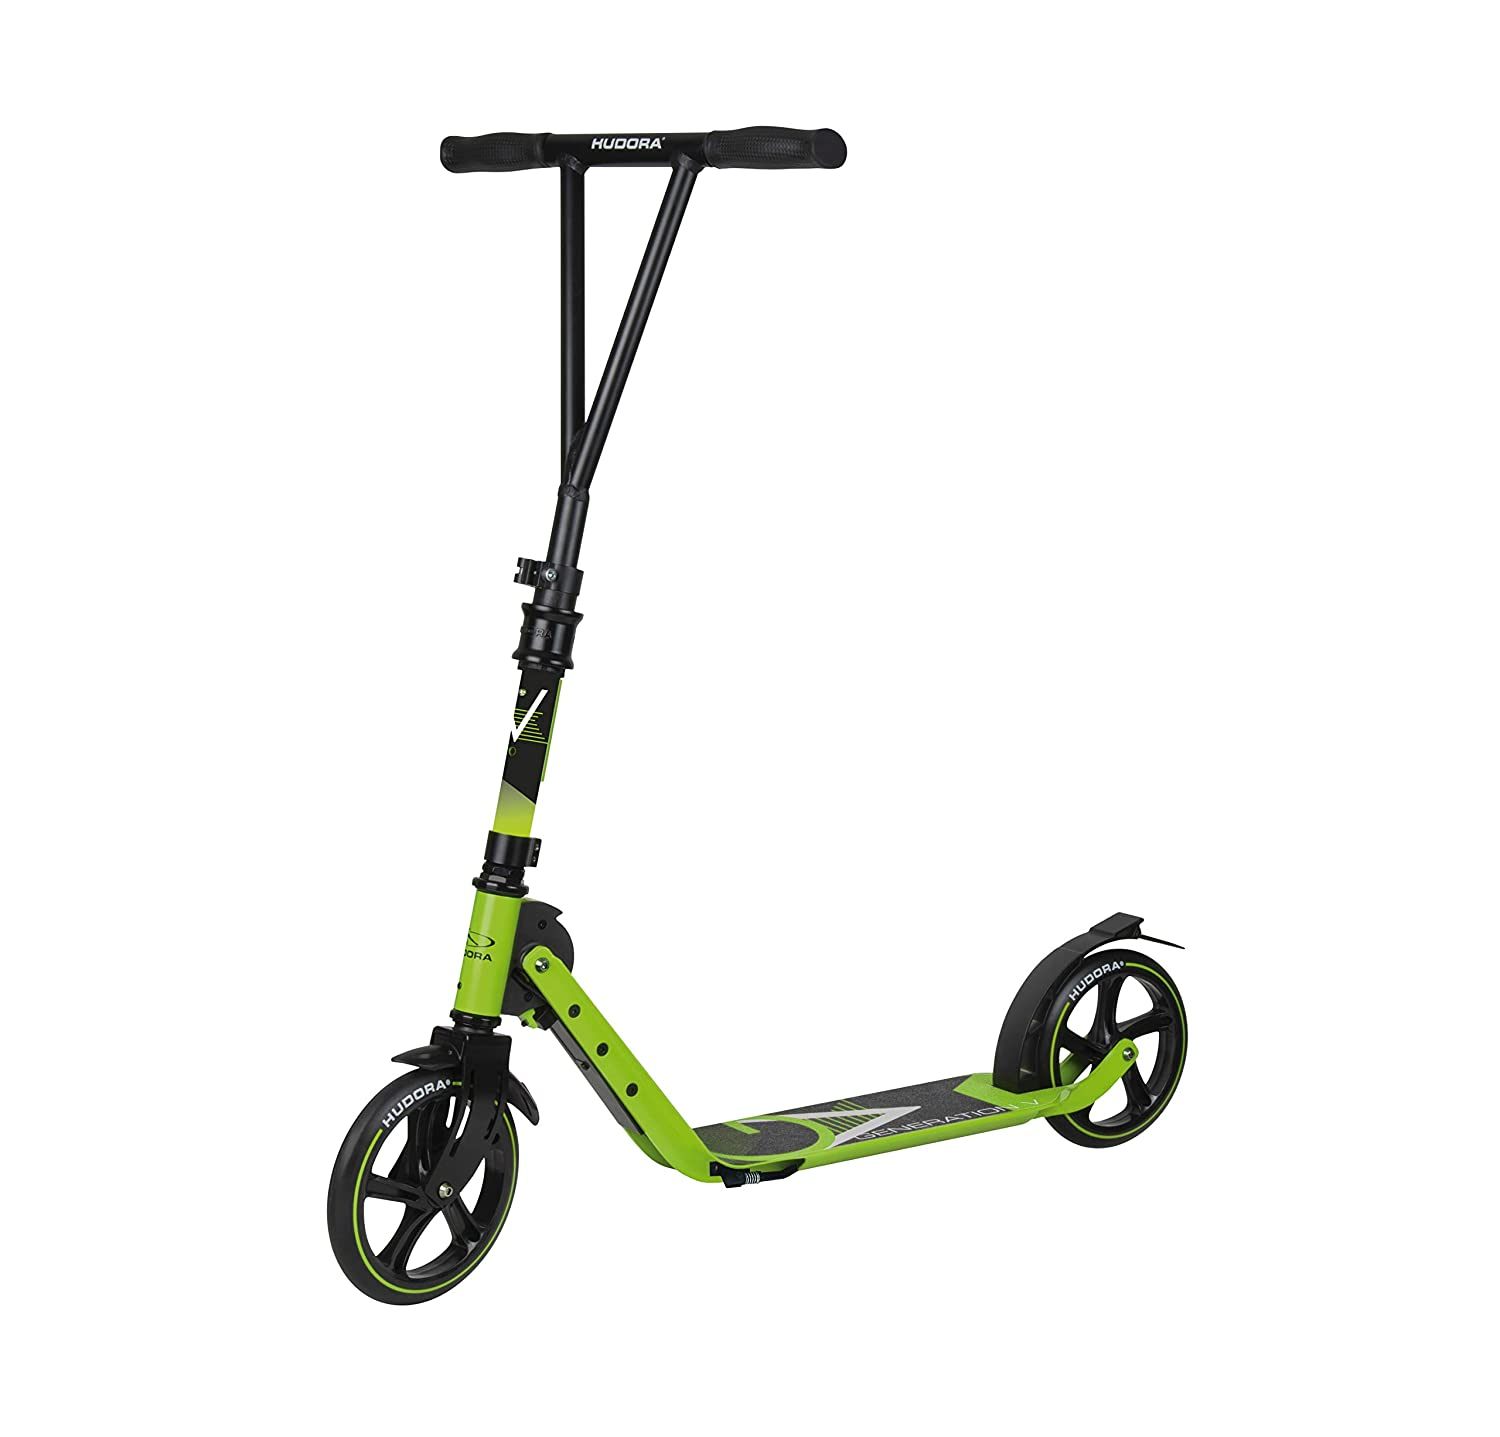 Hudora Big Wheel Generation V 205 - Patinete para niños y ...